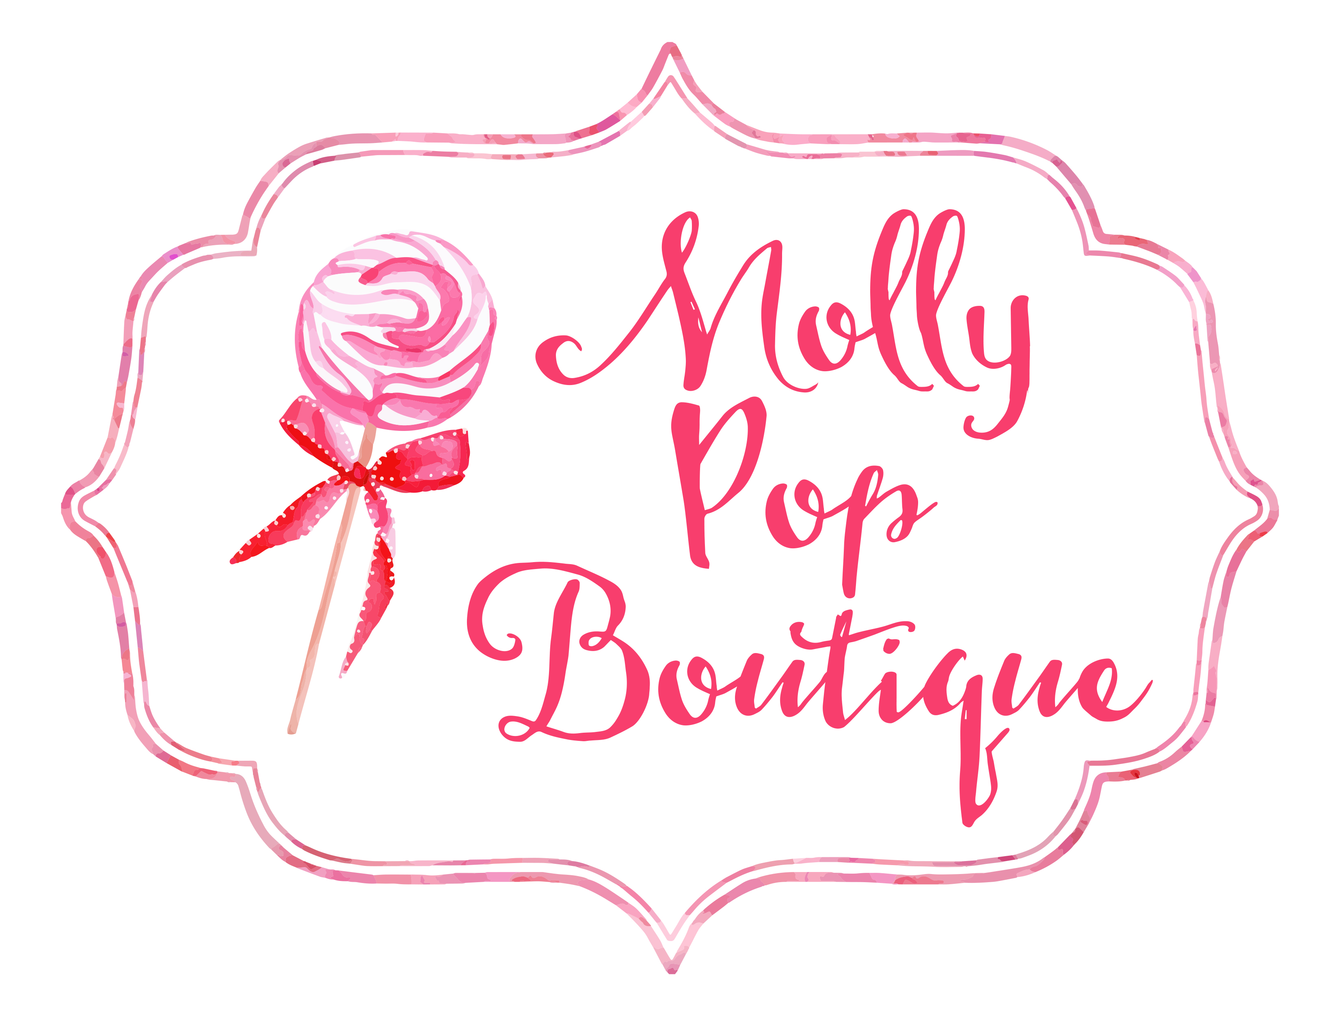 Molly Pop Boutique